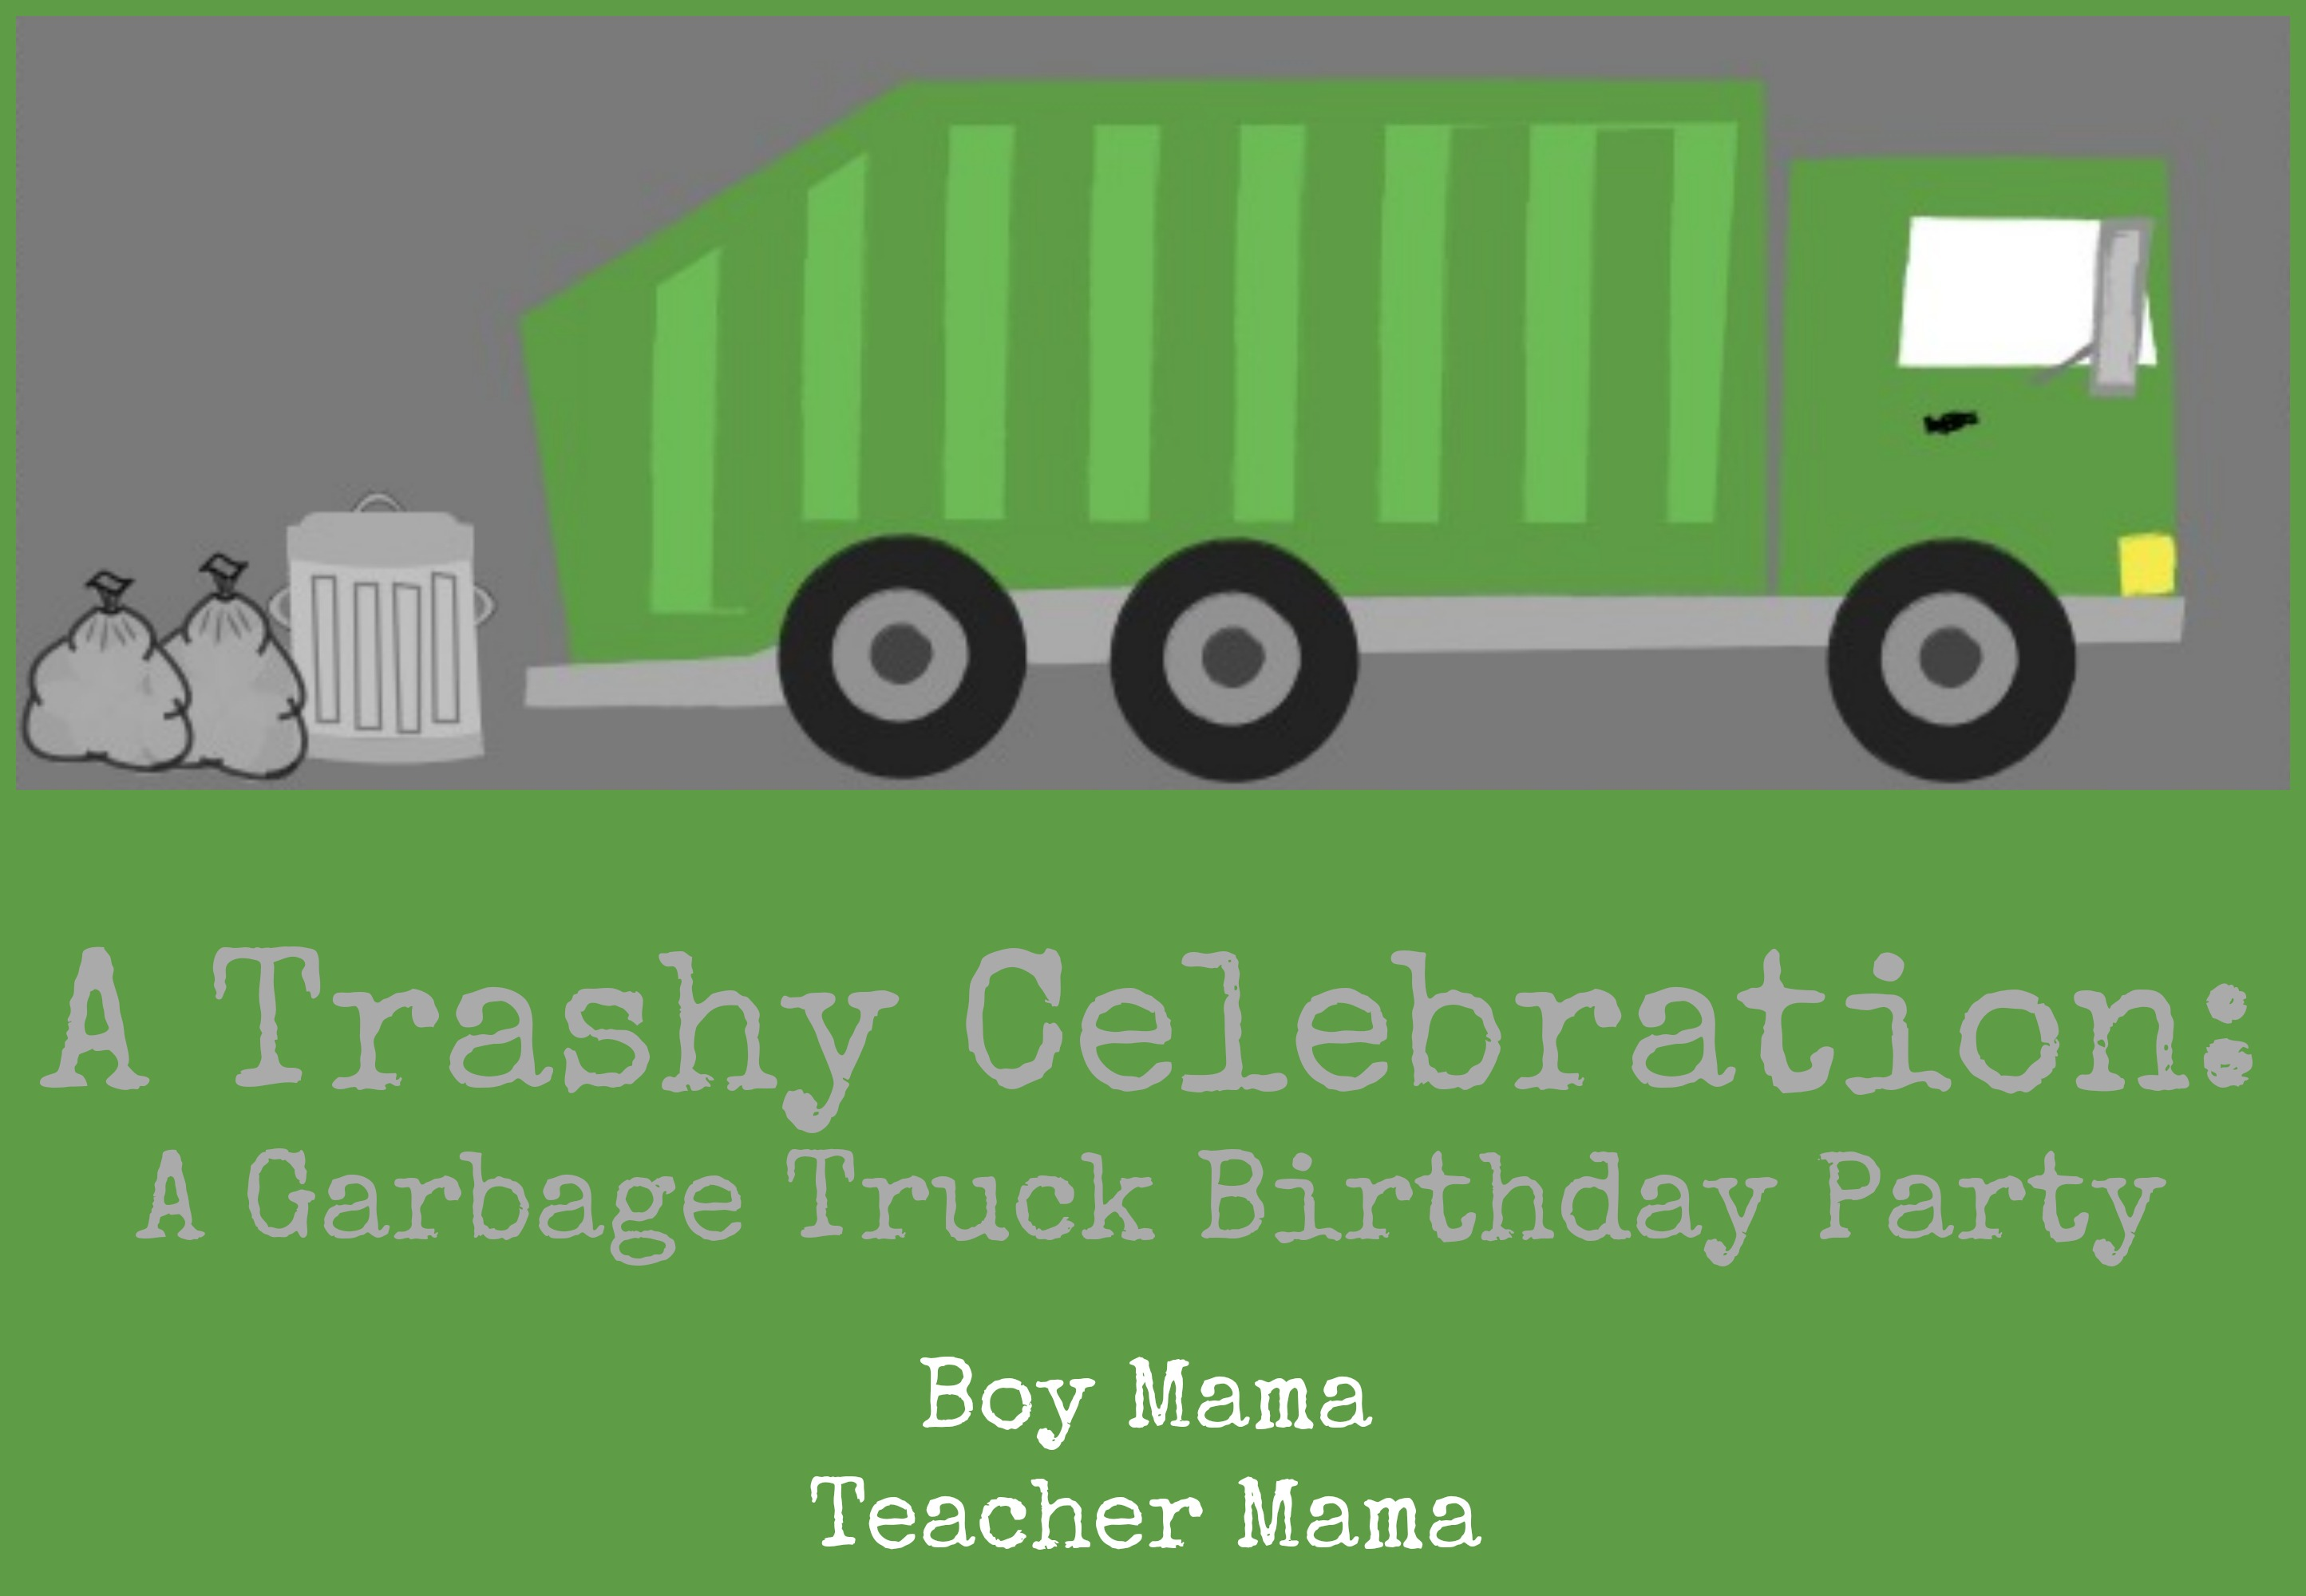 Boy Mama A Trashy Celebration Garbage Truck Birthday Party